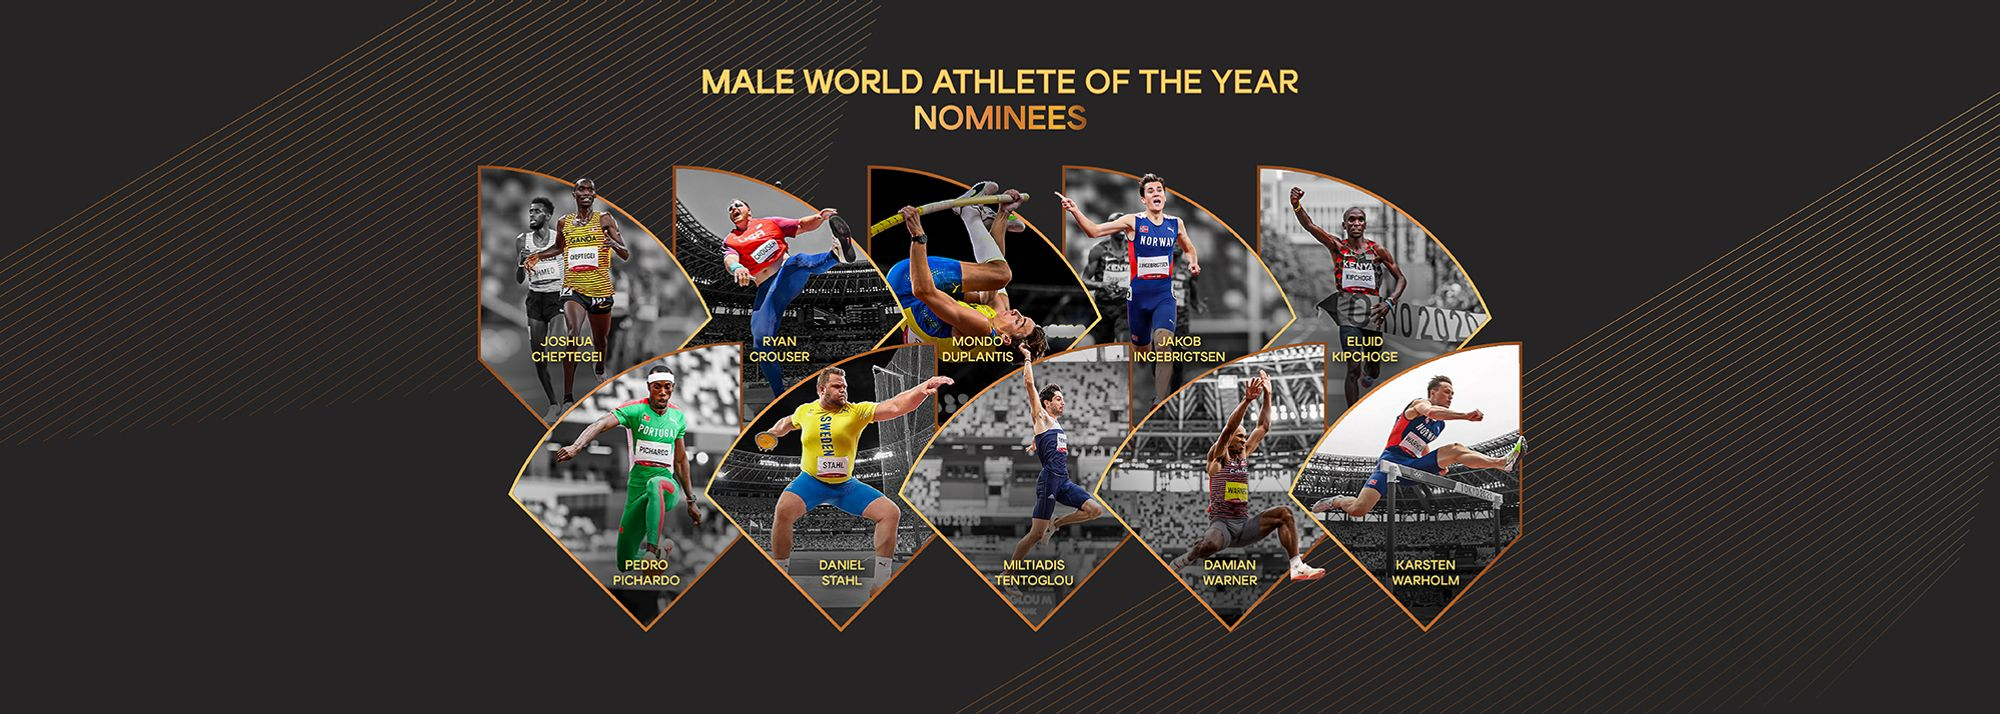 World Athletics is pleased to confirm a list of 10 nominees for Male World Athlete of the Year.